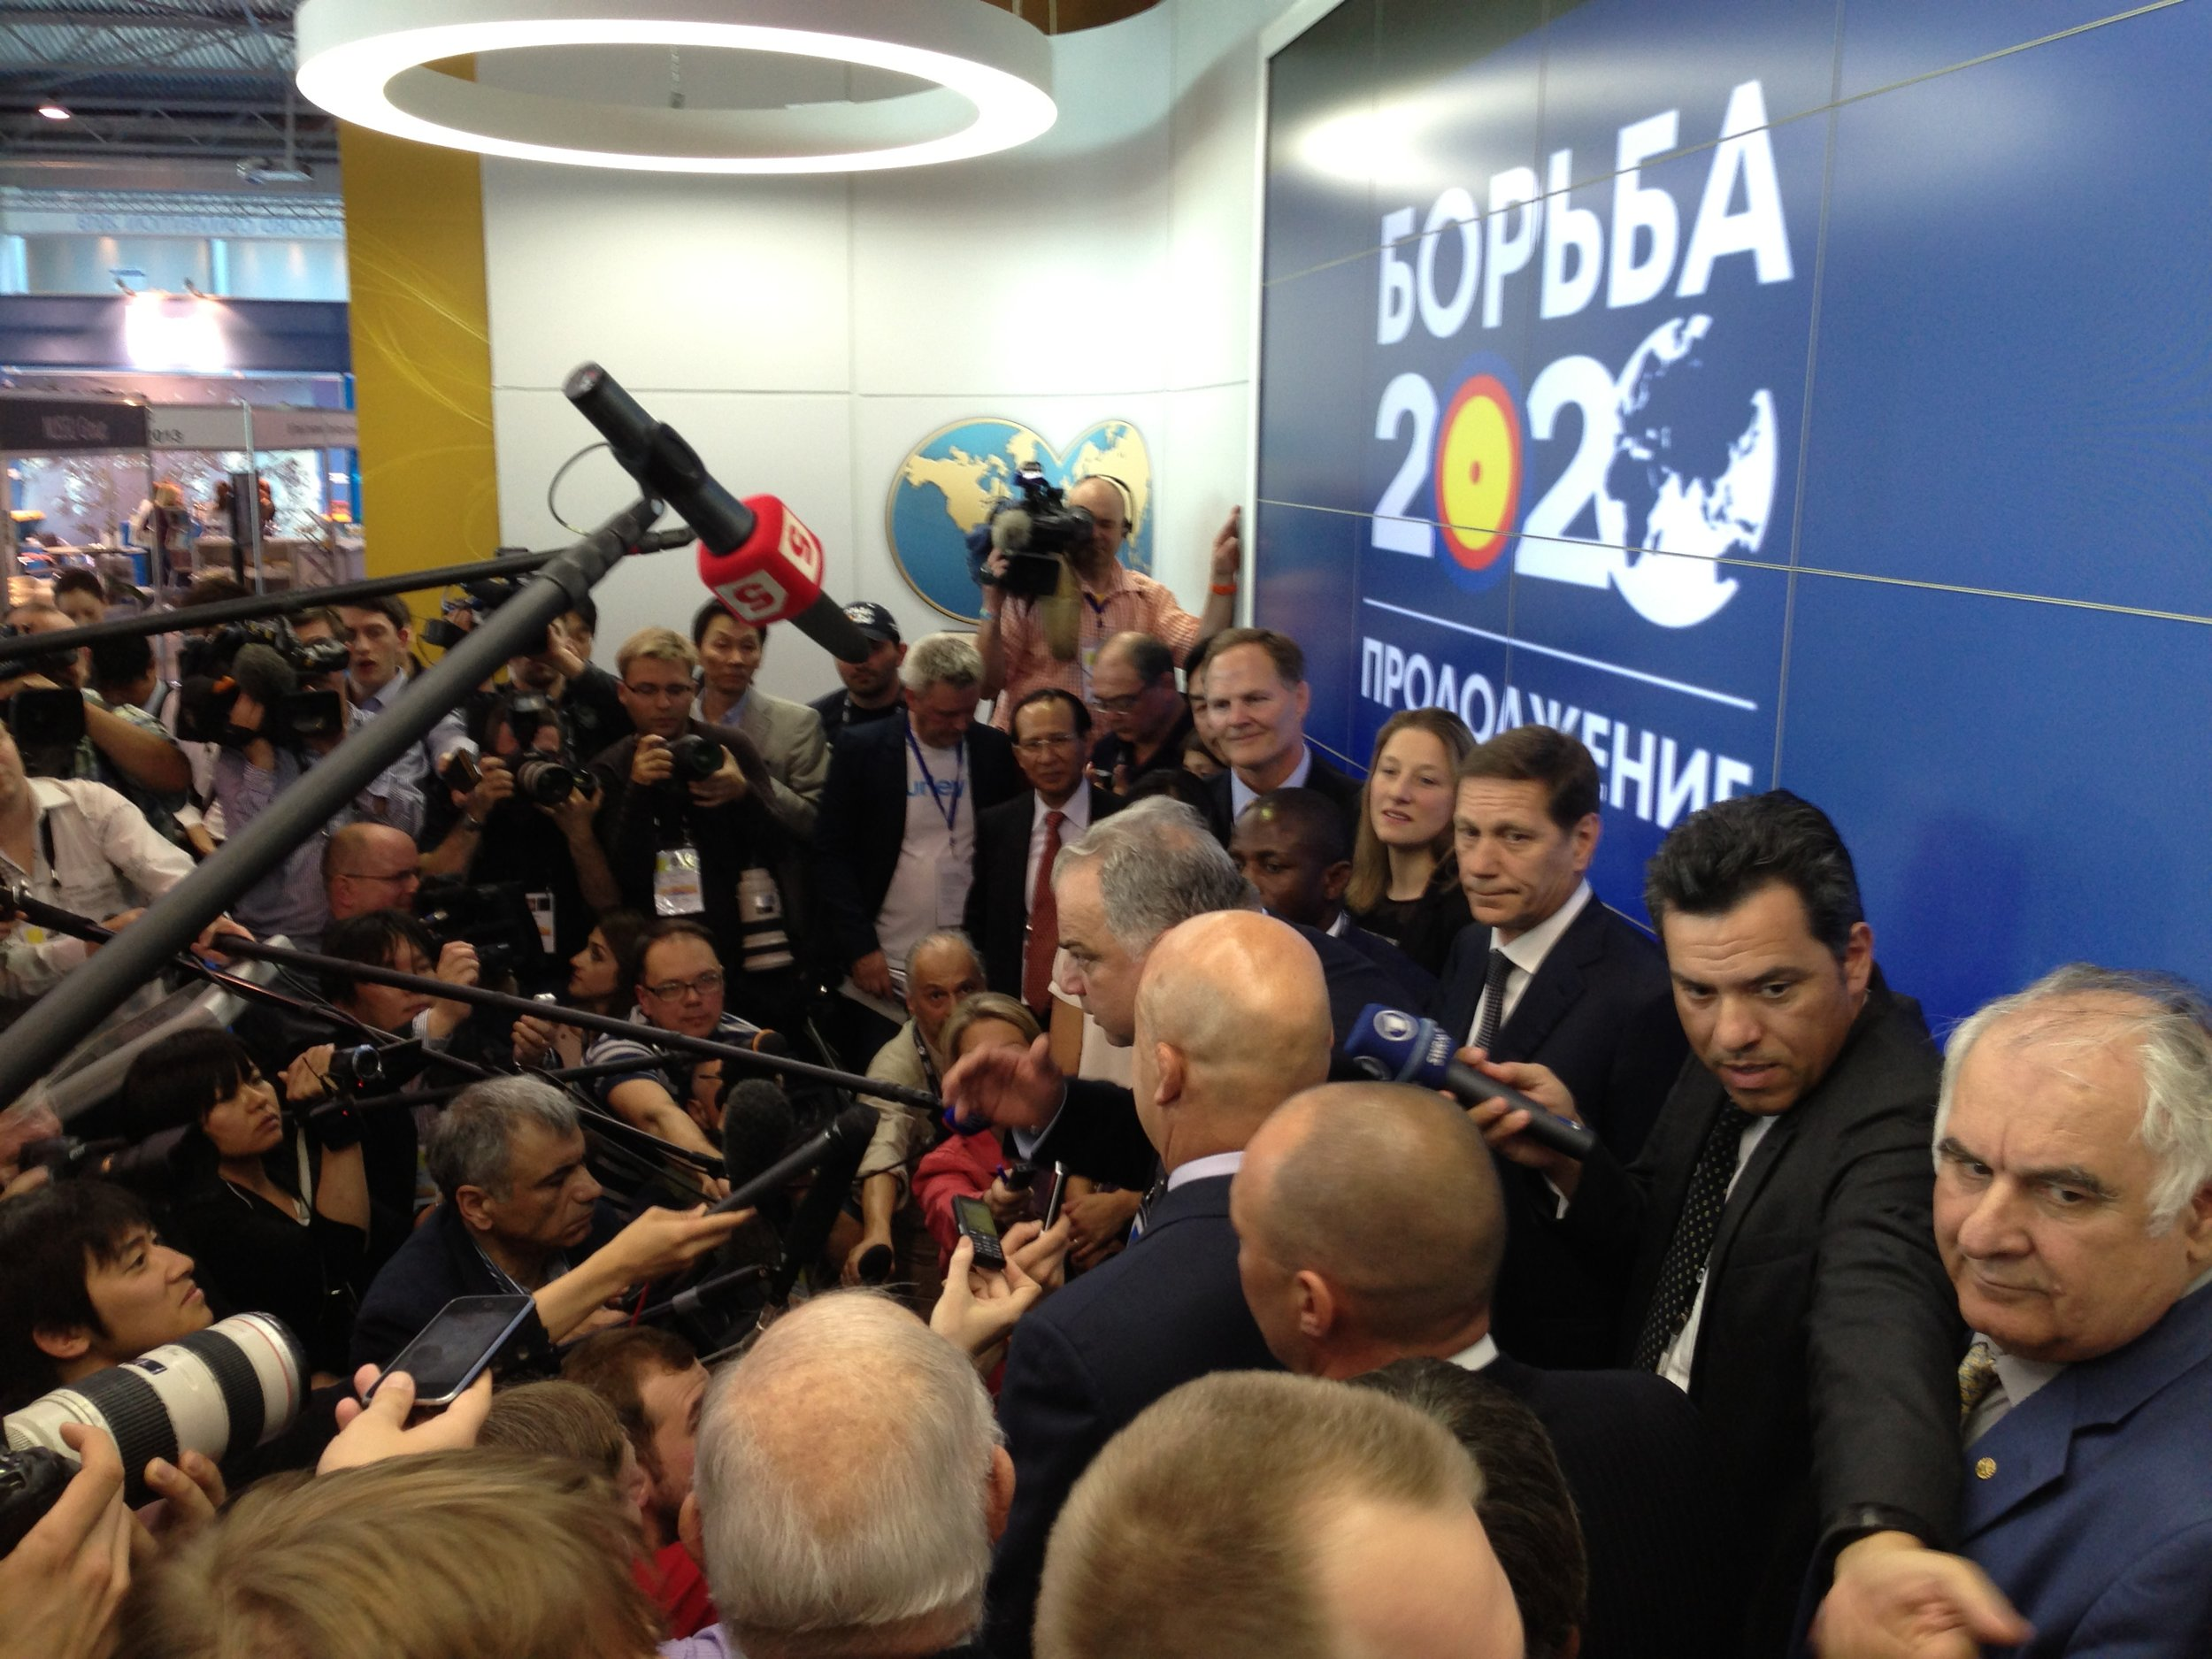 Jubilant wrestling officials meet the press after Wednesday's IOC executive board vote